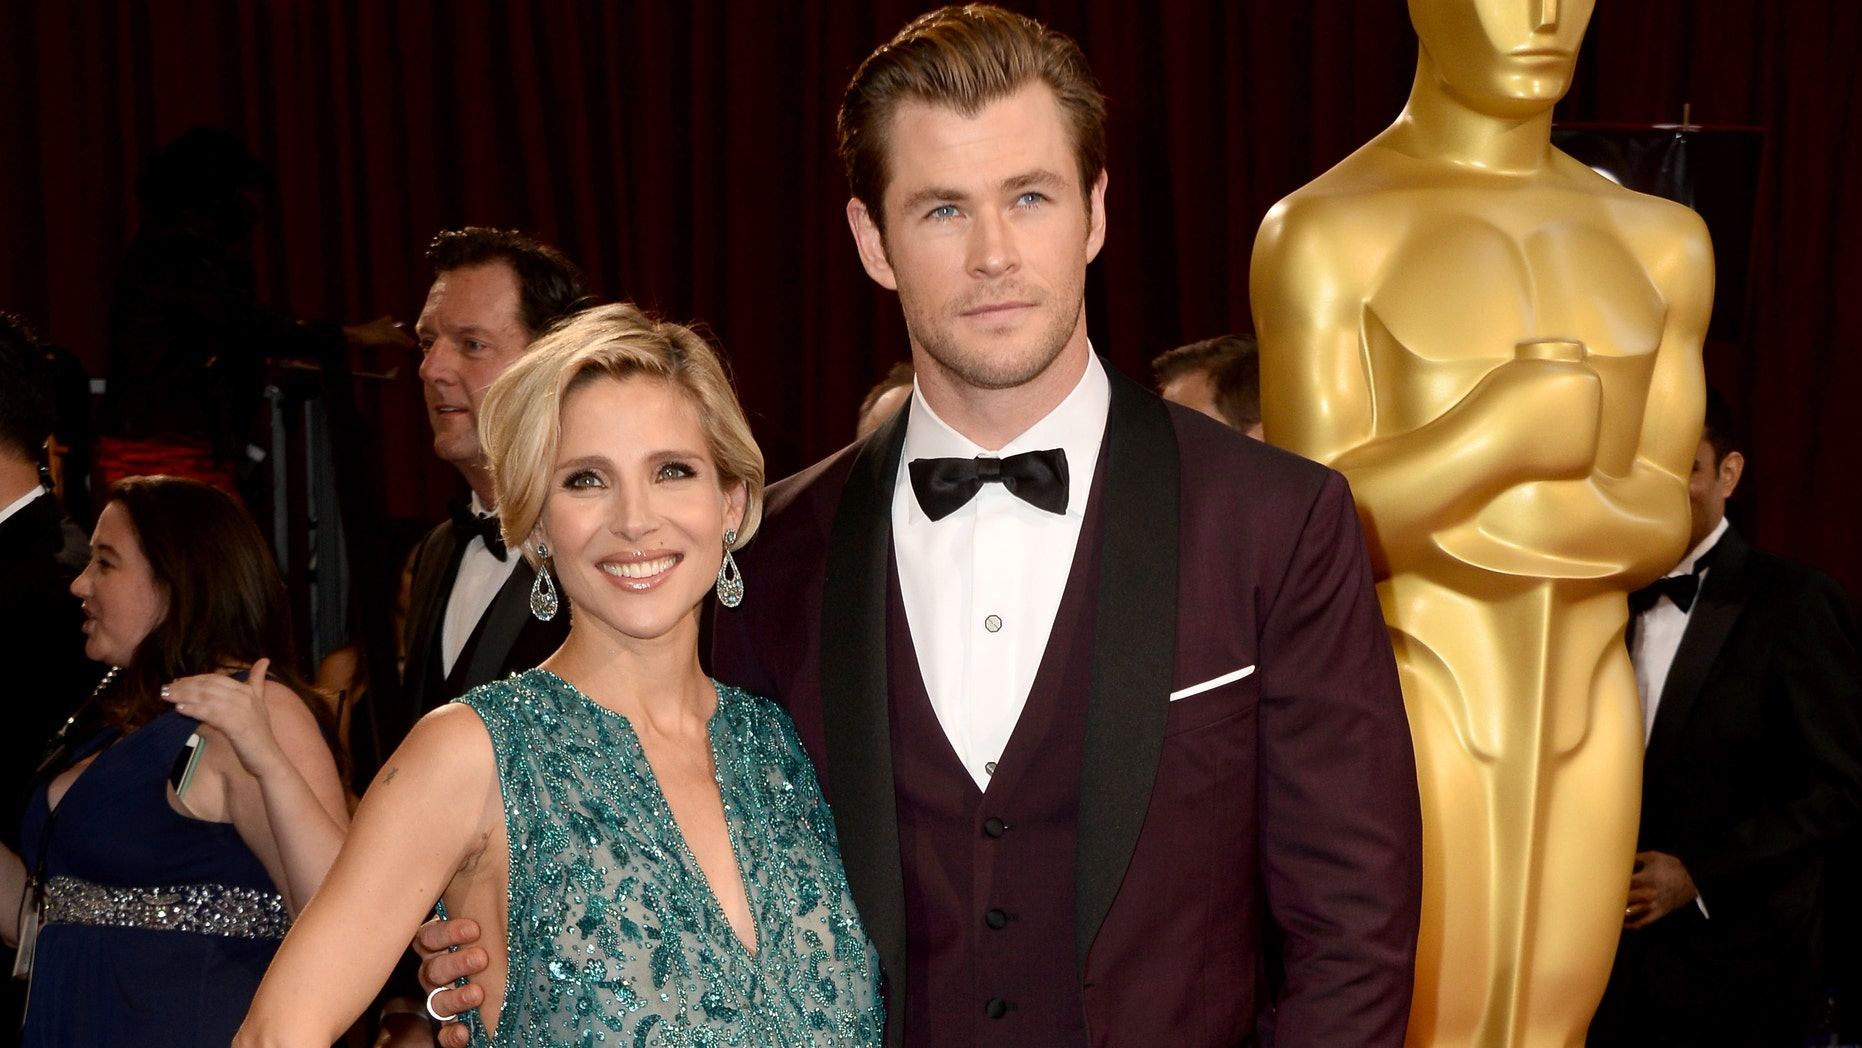 HOLLYWOOD, CA - MARCH 02:  Actors Elsa Pataky (L) and Chris Hemsworth attend the Oscars held at Hollywood & Highland Center on March 2, 2014 in Hollywood, California.  (Photo by Frazer Harrison/Getty Images)